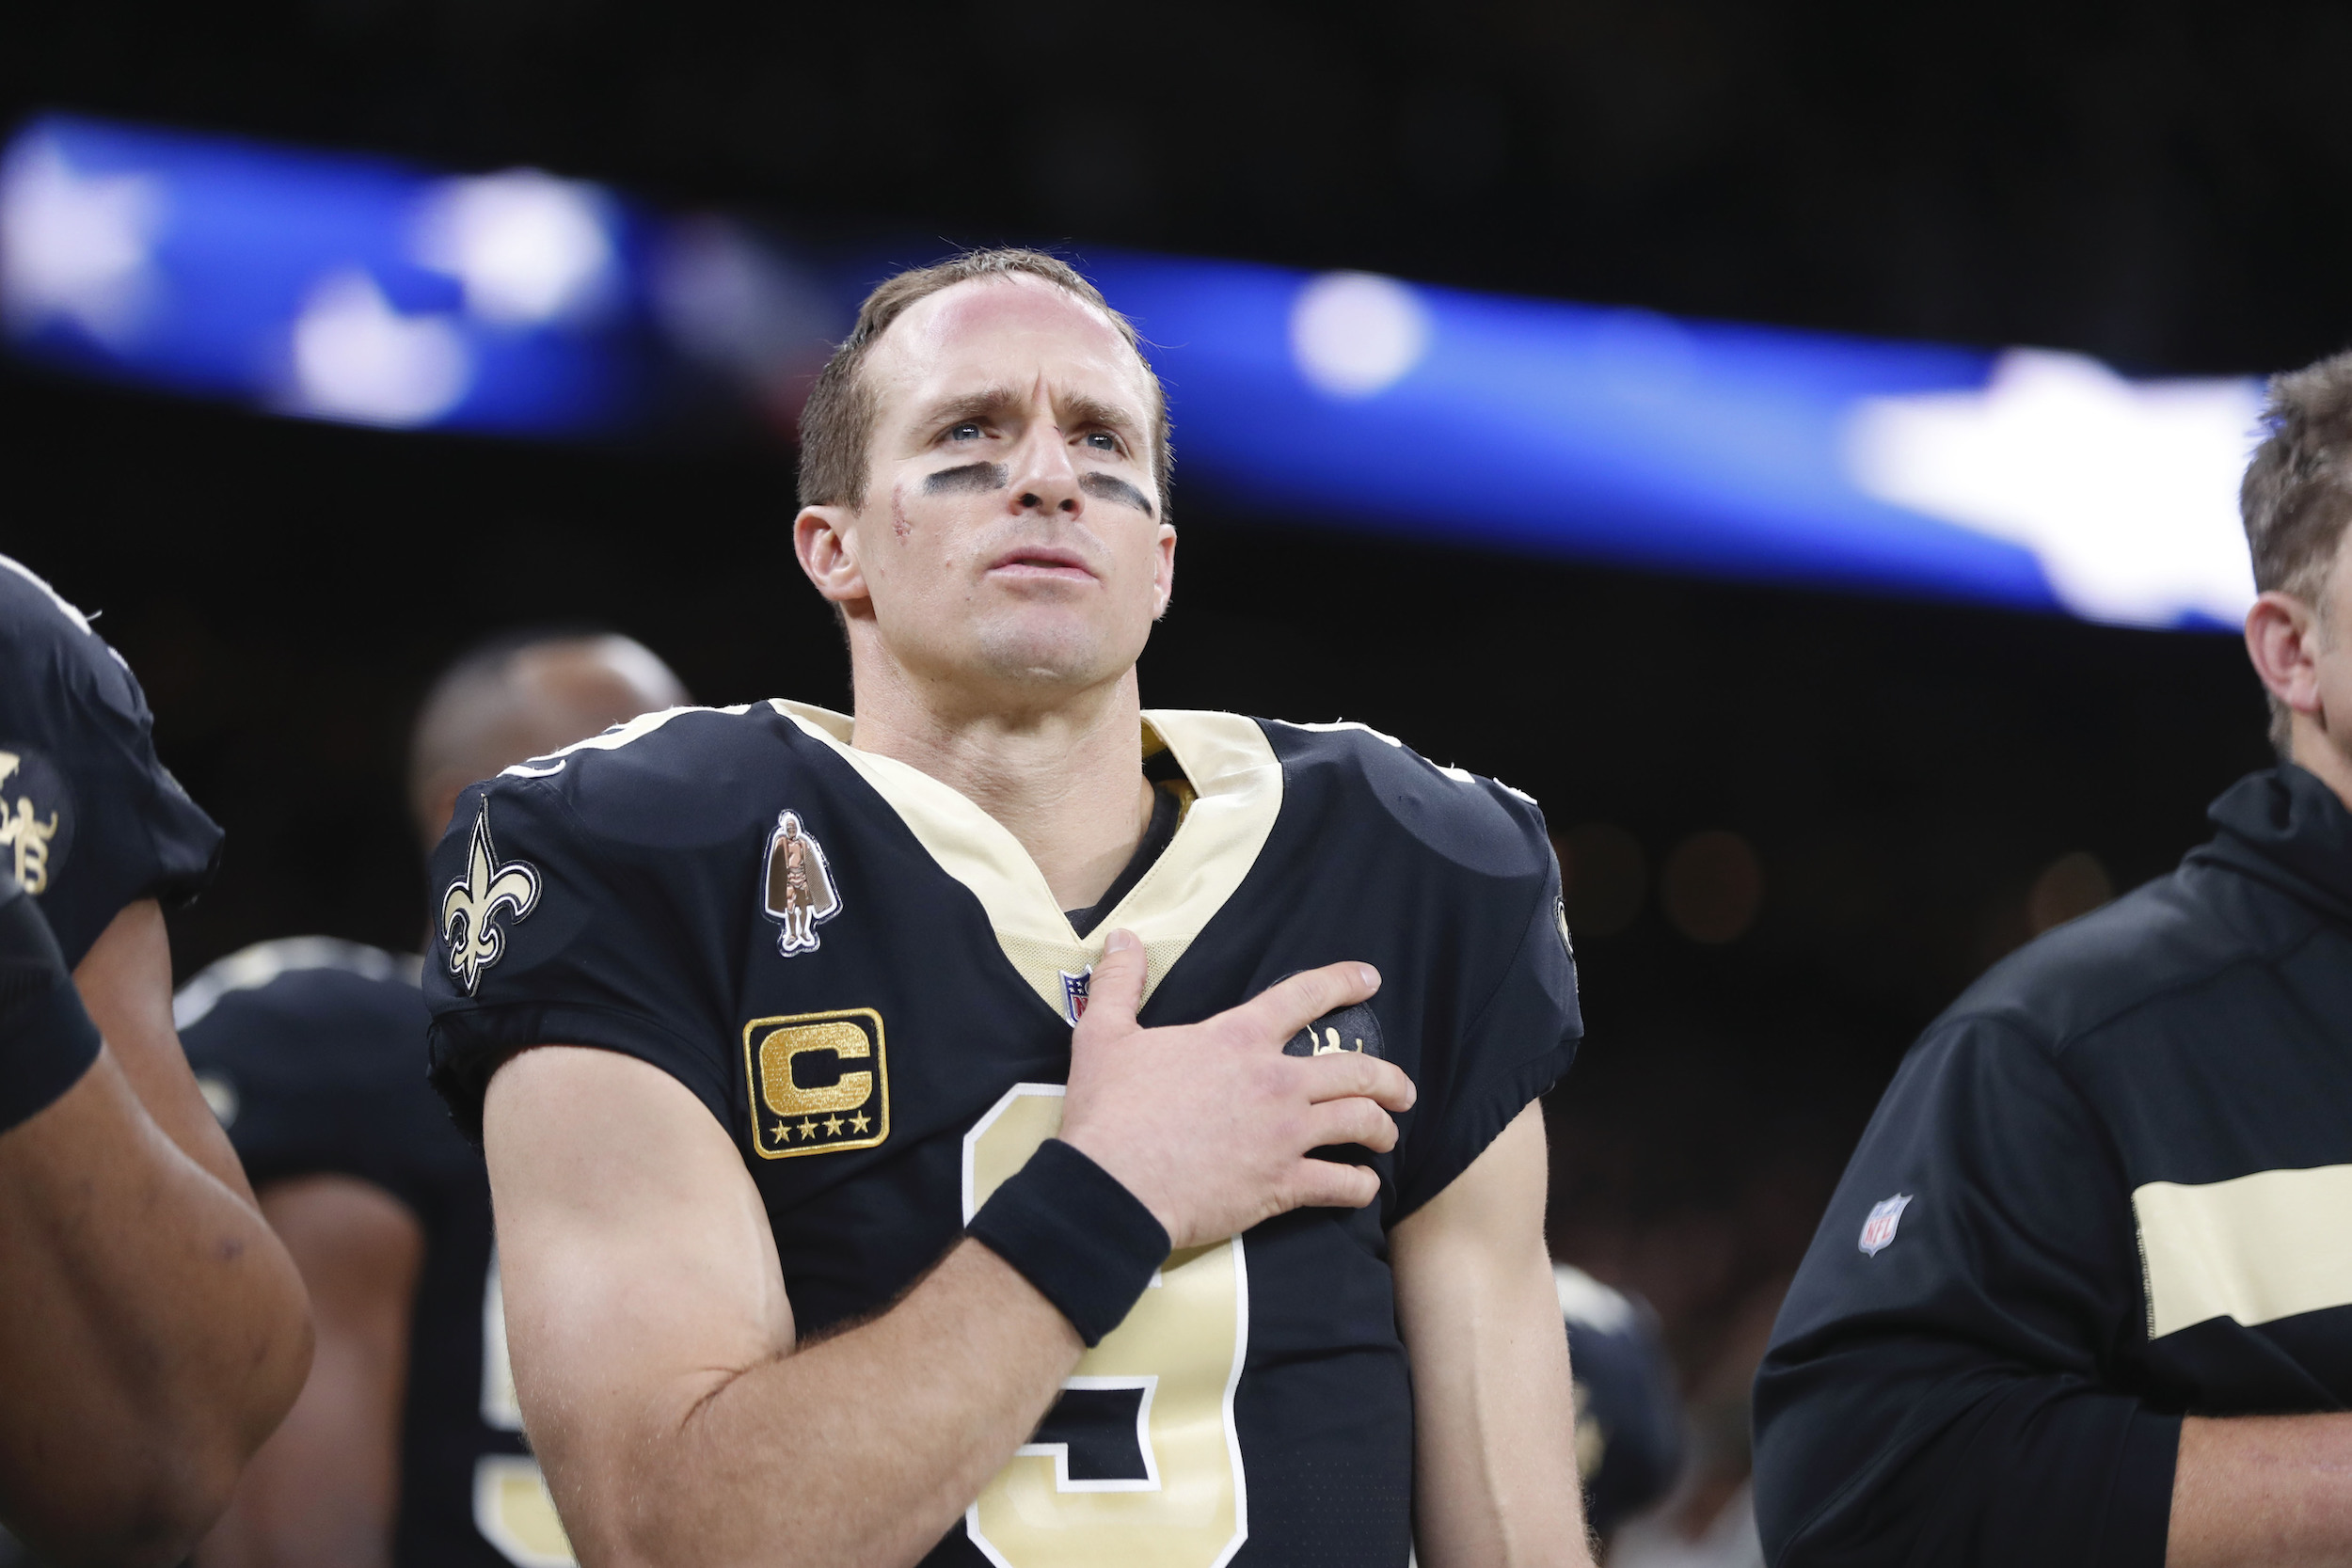 New Orleans Saints quarterback Drew Brees (9) holds his hand to his heart during the national anthem before an NFL football game against the Pittsburgh Steelers in New Orleans, on Dec. 23, 2018.